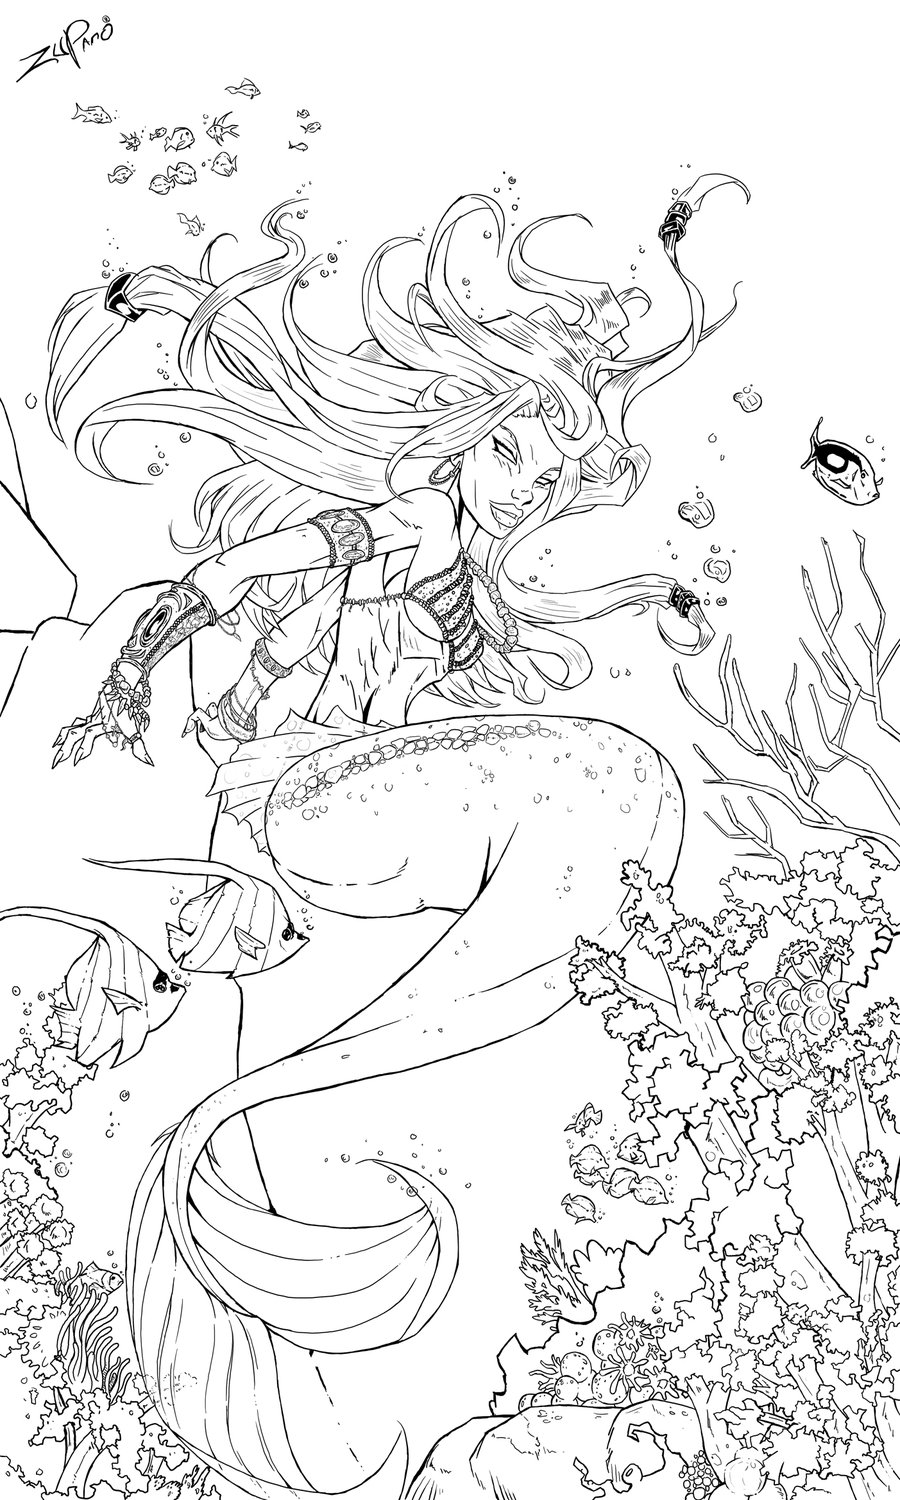 Mermaid Line Art Tattoo Design